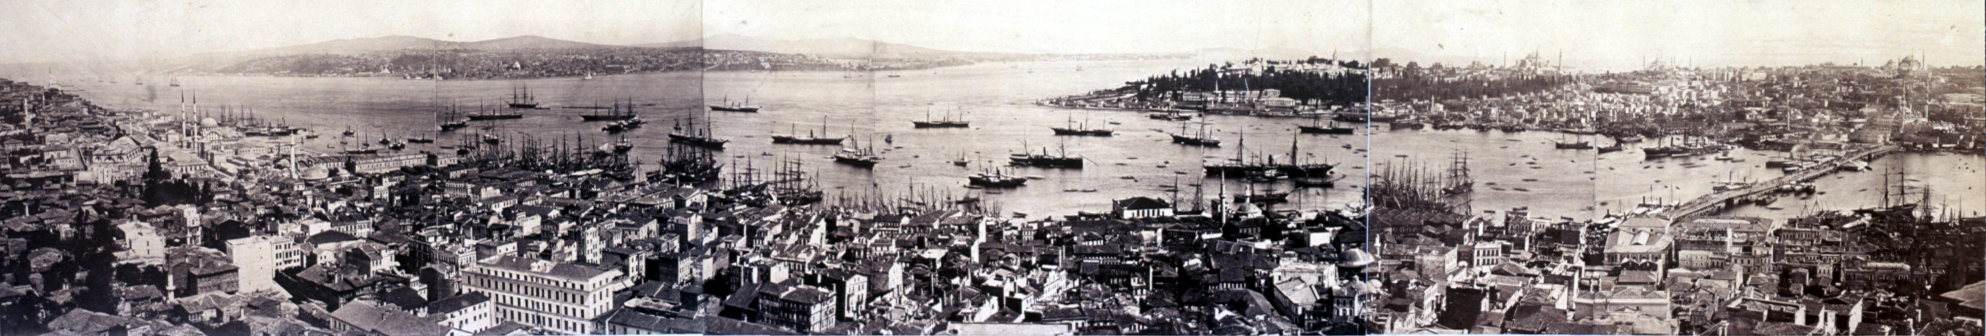 Constantinople around 1870, with a bridge across the Golden Horn seen on the right; the bridge that Mkrdich Cezayirliyan made had already been destroyed more than a decade before this picture was taken, whether by accident or due to sabotage by competitors is not known